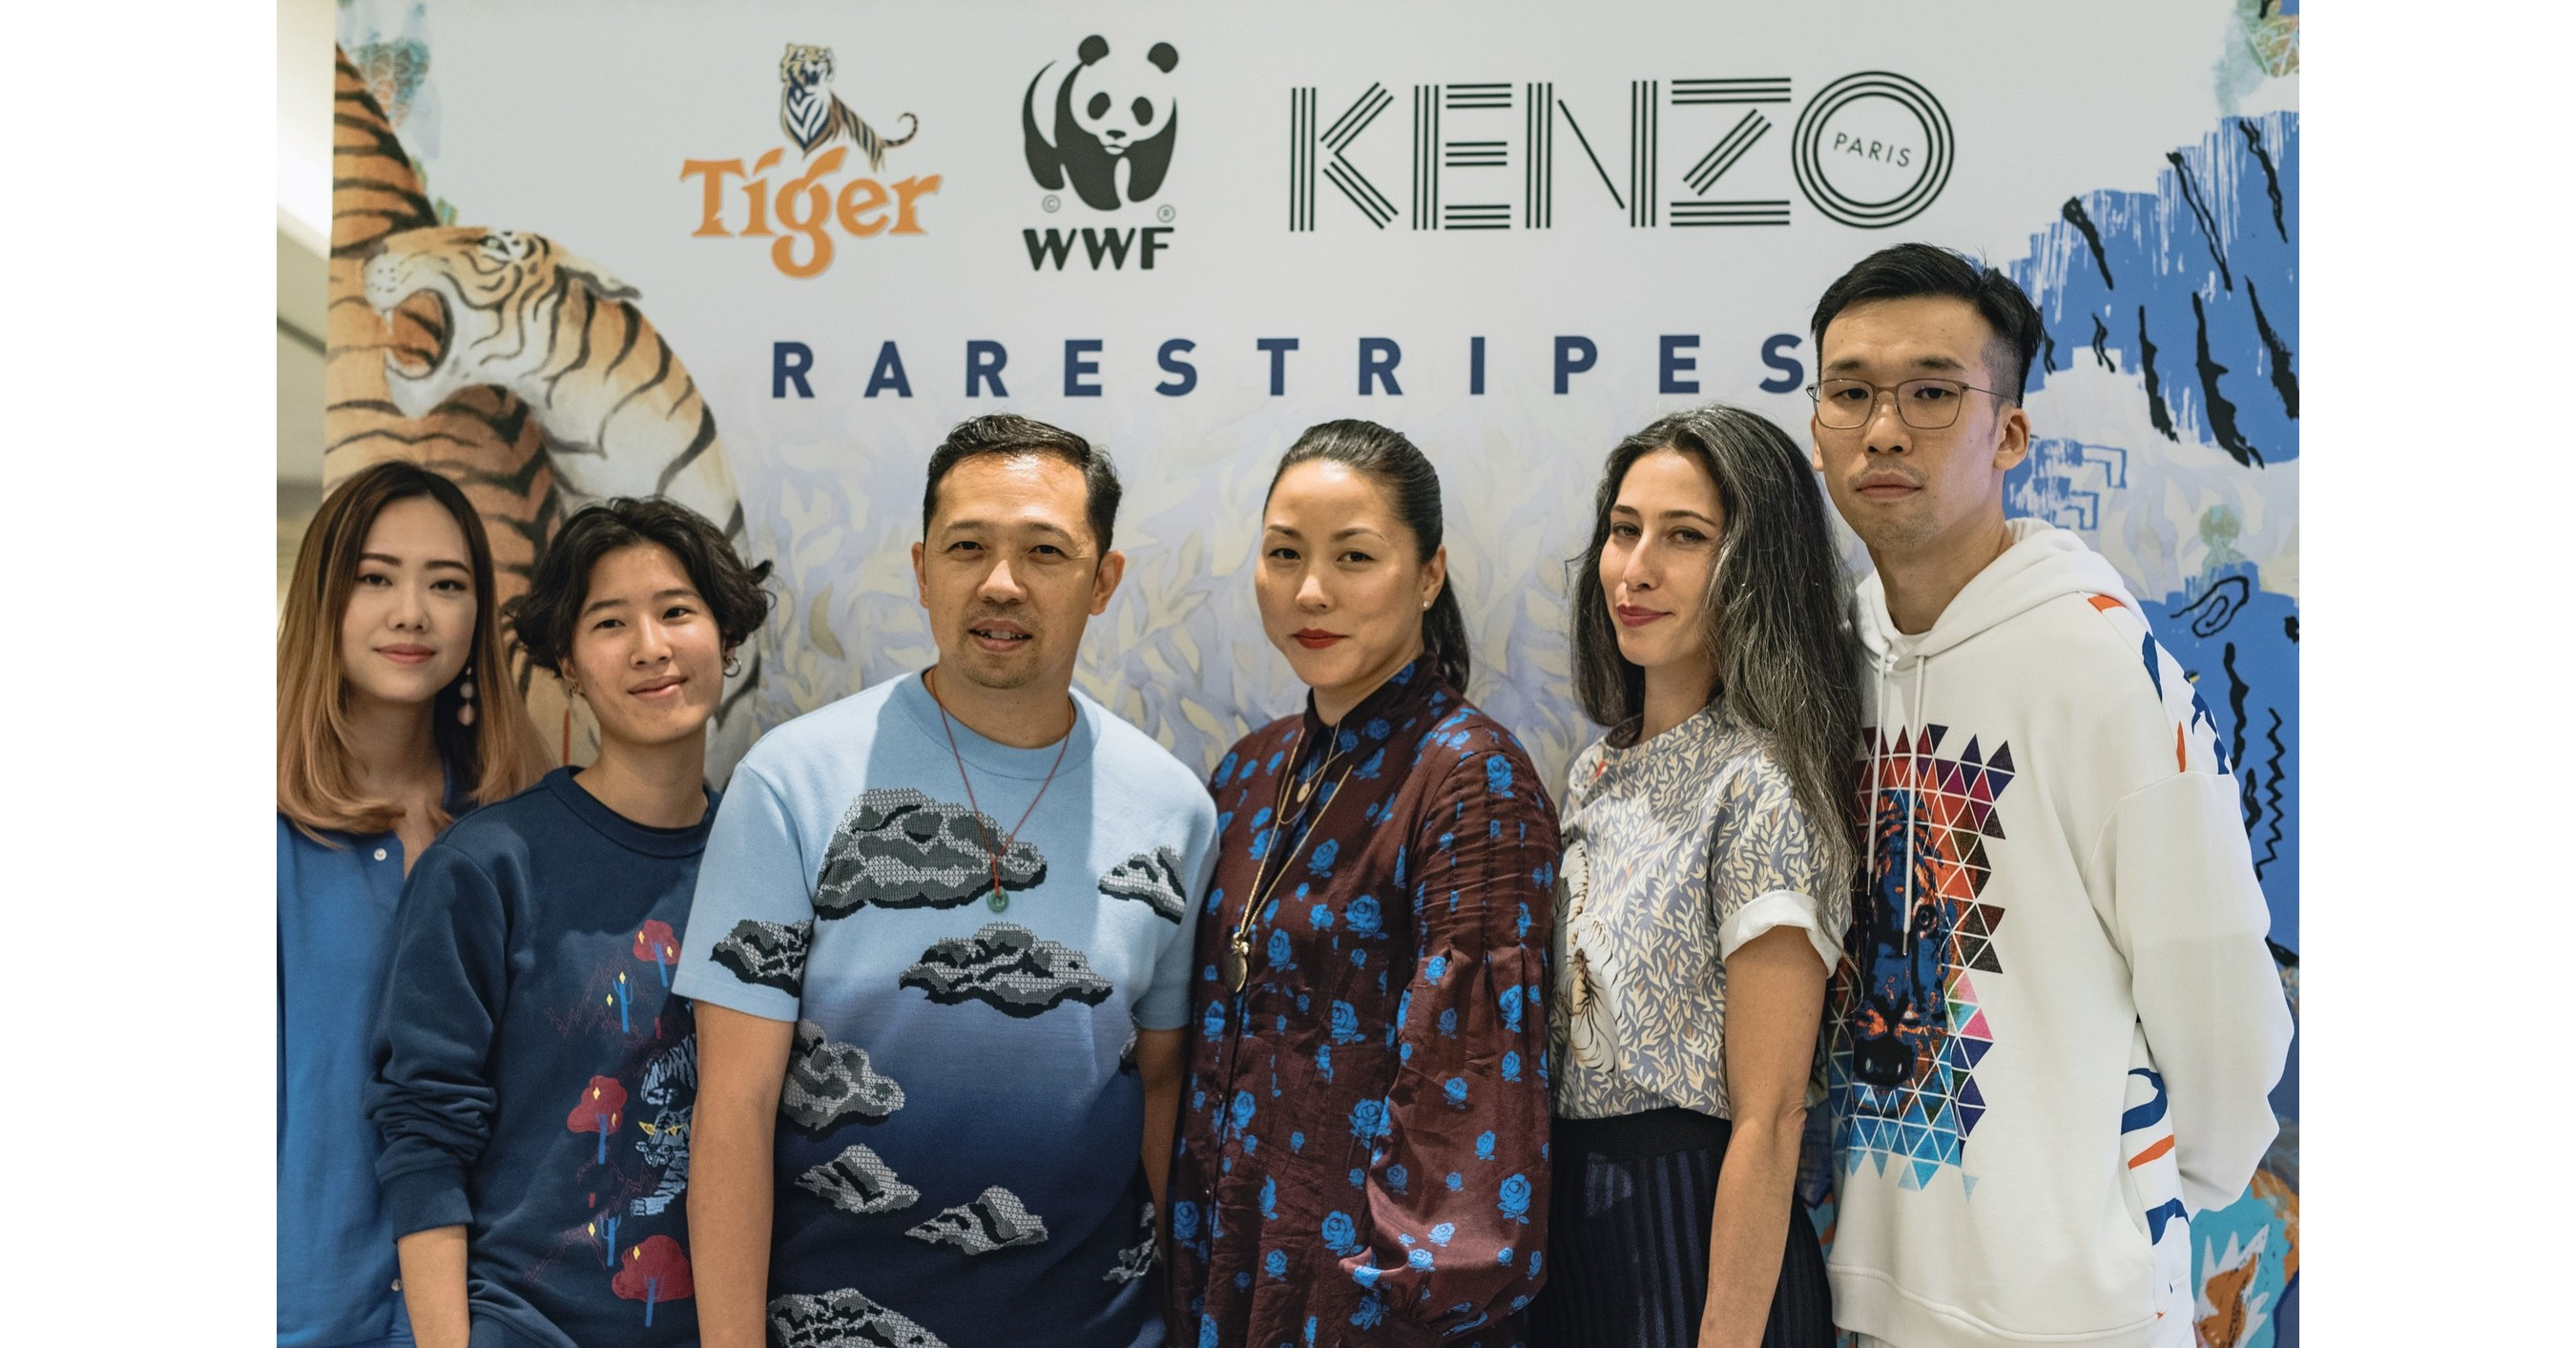 World's First 'Rare Stripes' Collection Unveiled in the Name of Wild Tiger Conservation